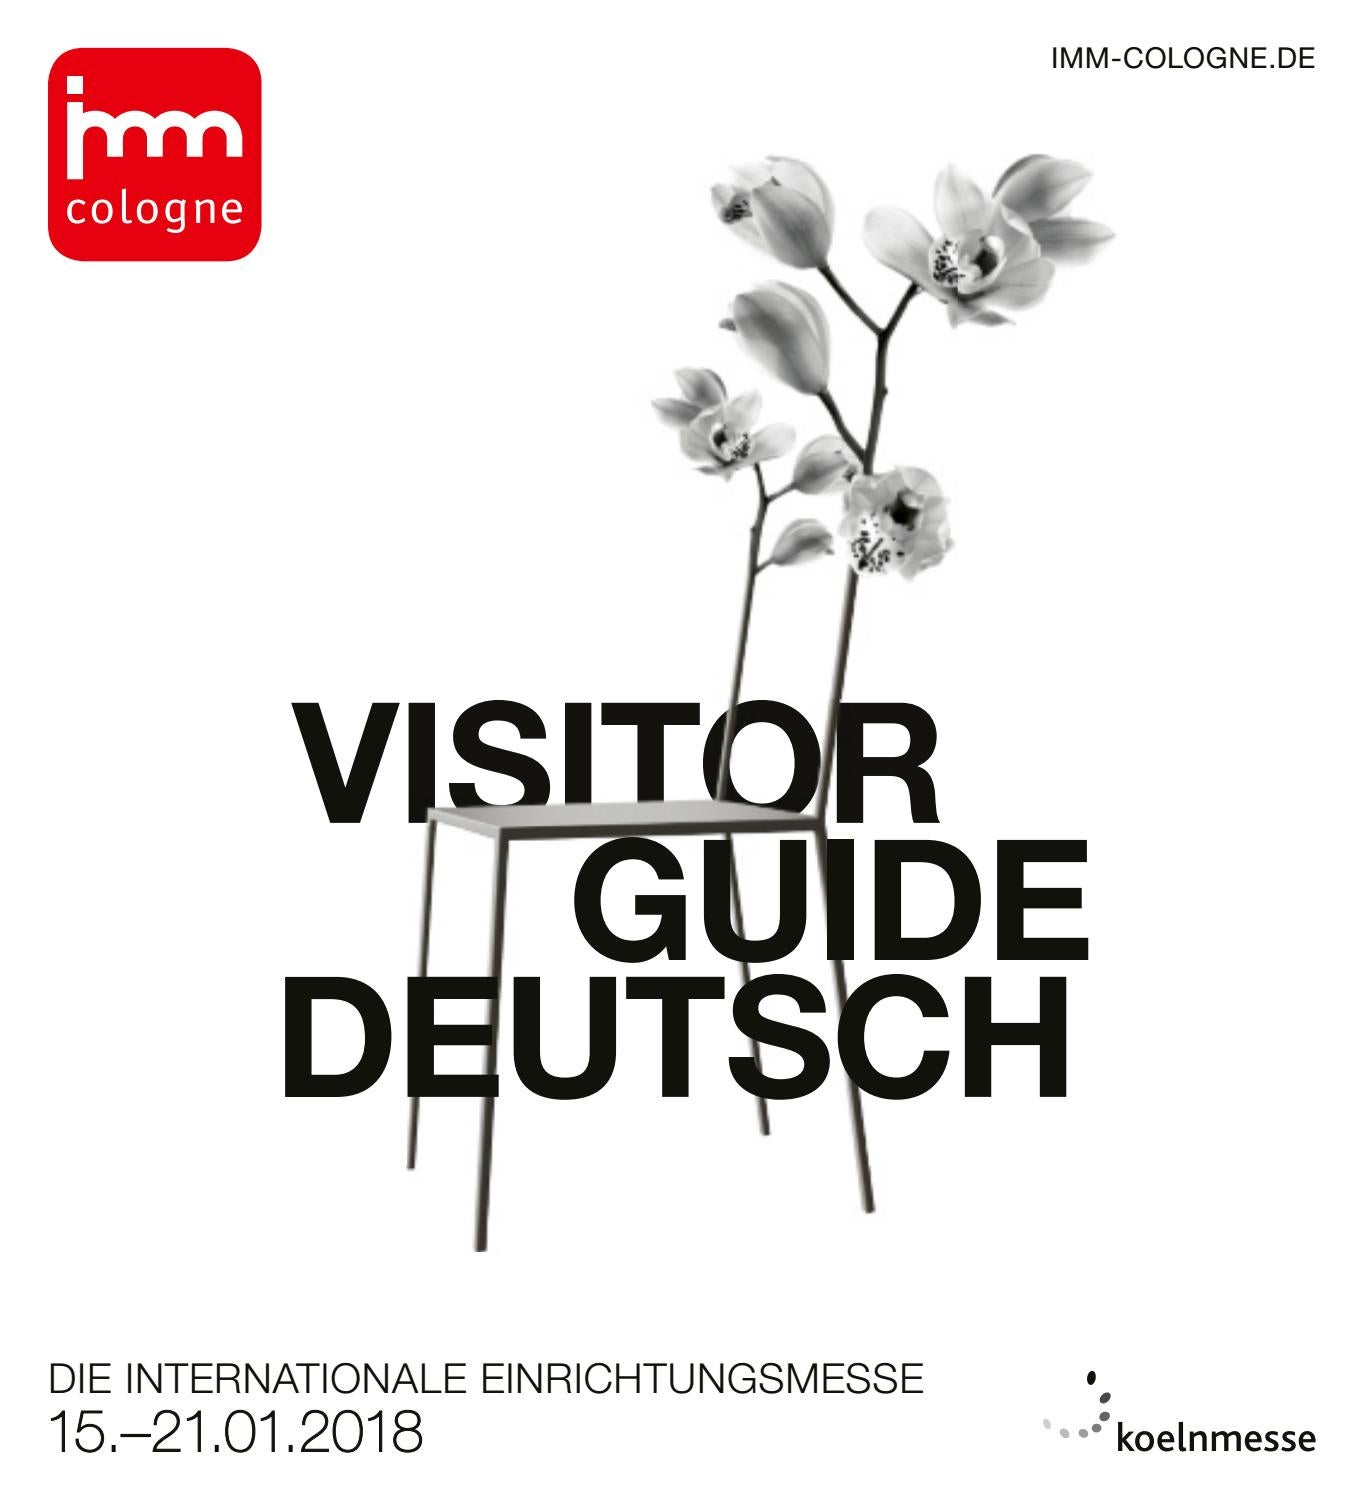 Toll Elegant Imm Cologne 2018 Visitor Guide D By Koelnmesse GmbH Issuu